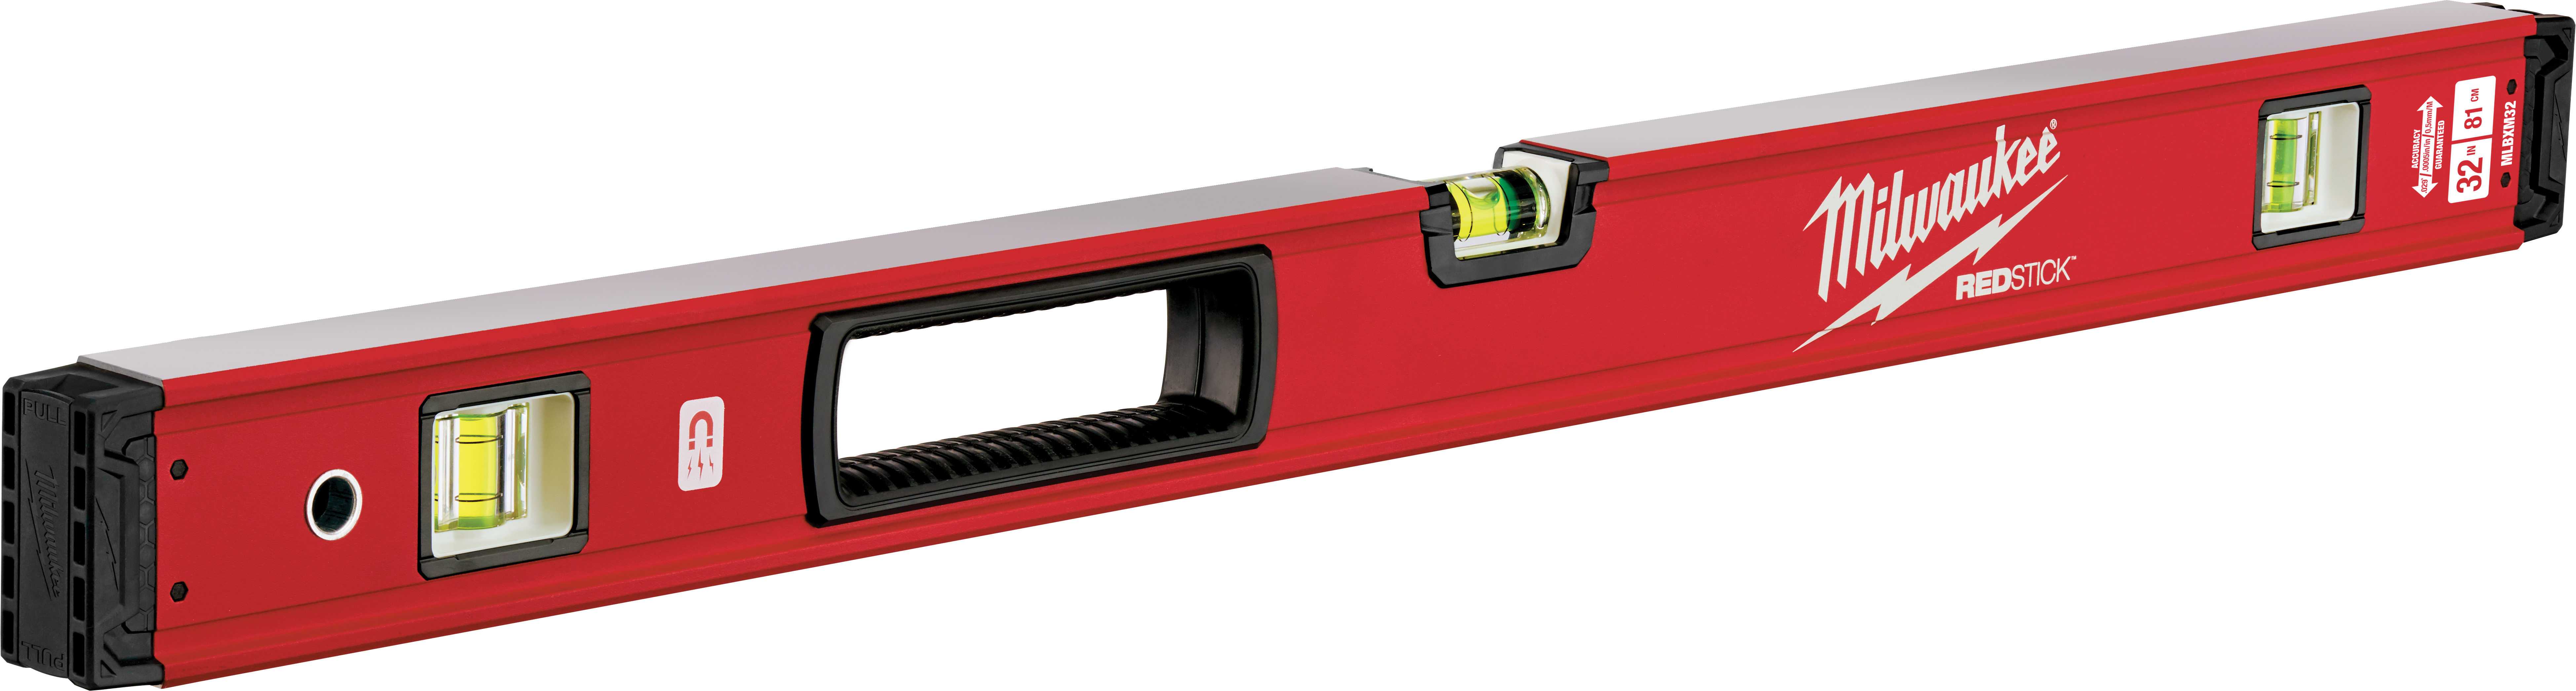 Milwaukee® REDSTICK™ MLBXM32 Magnetic Box Level, 32 in L, 3 Vials, Aluminum, (1) Level, (2) Plumb Vial Position, 0.0005 in/in Accuracy